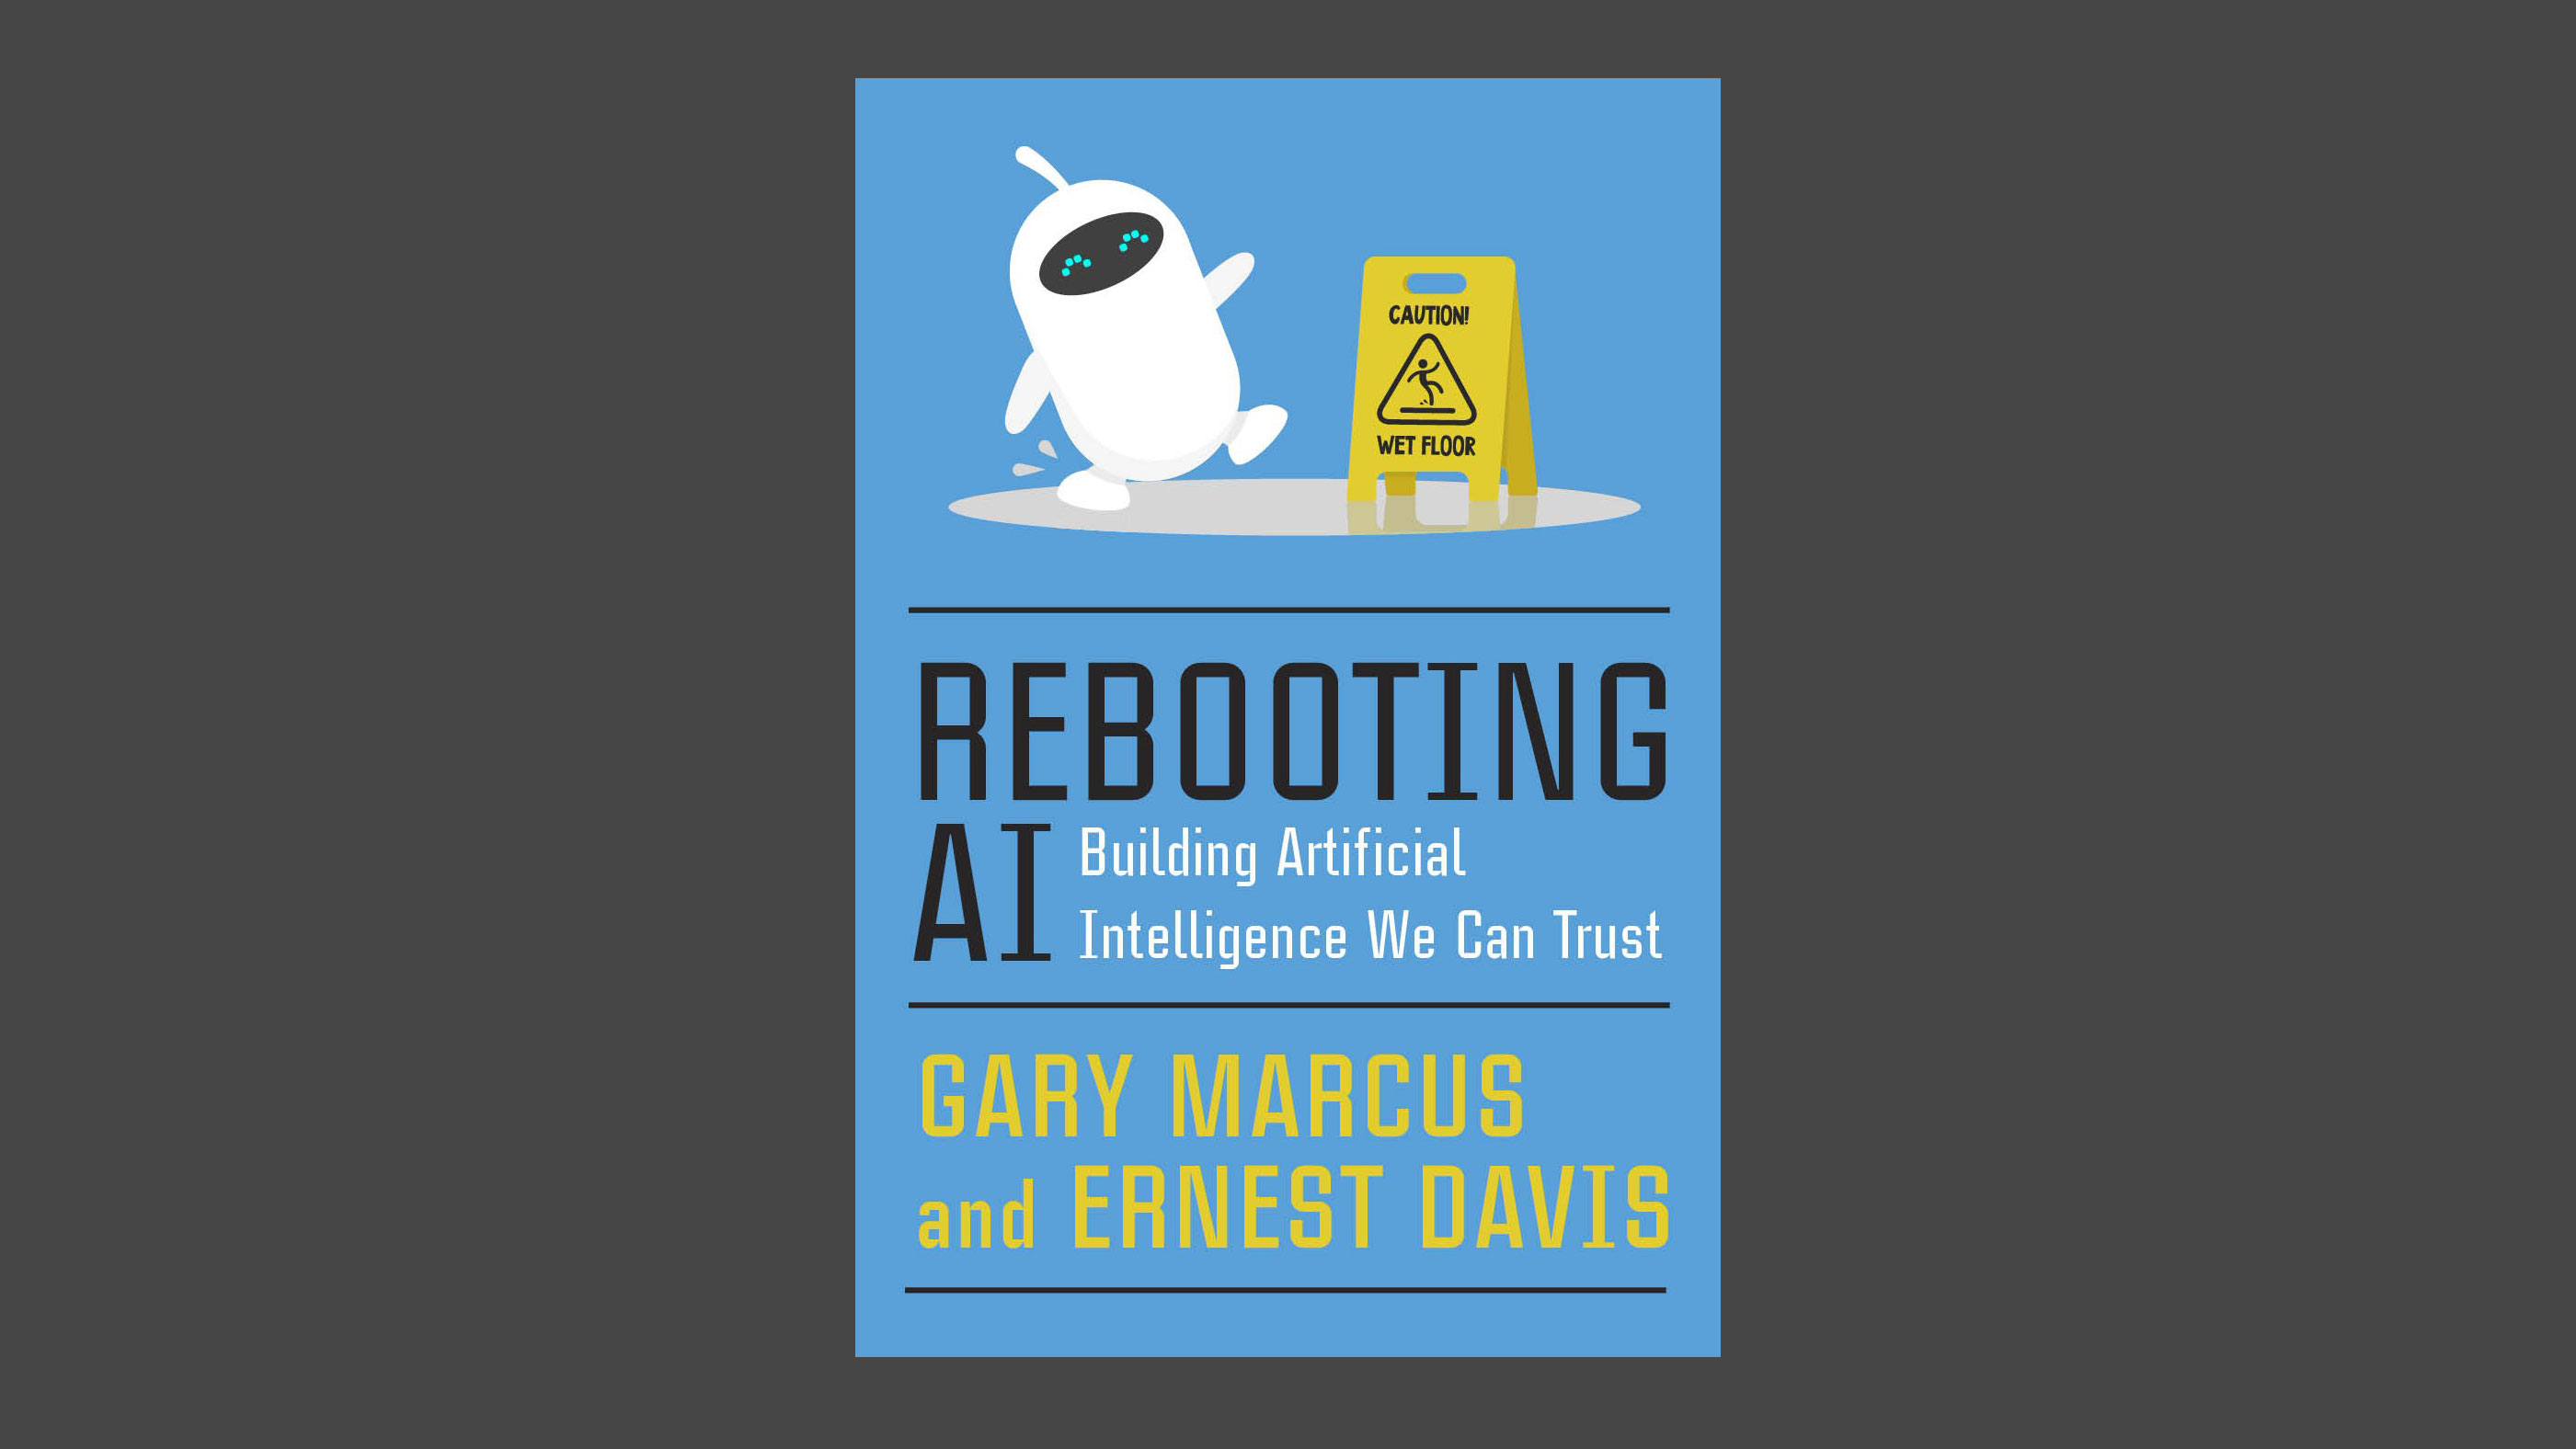 Rebooting AI by Gary Marcus and Ernest Davis